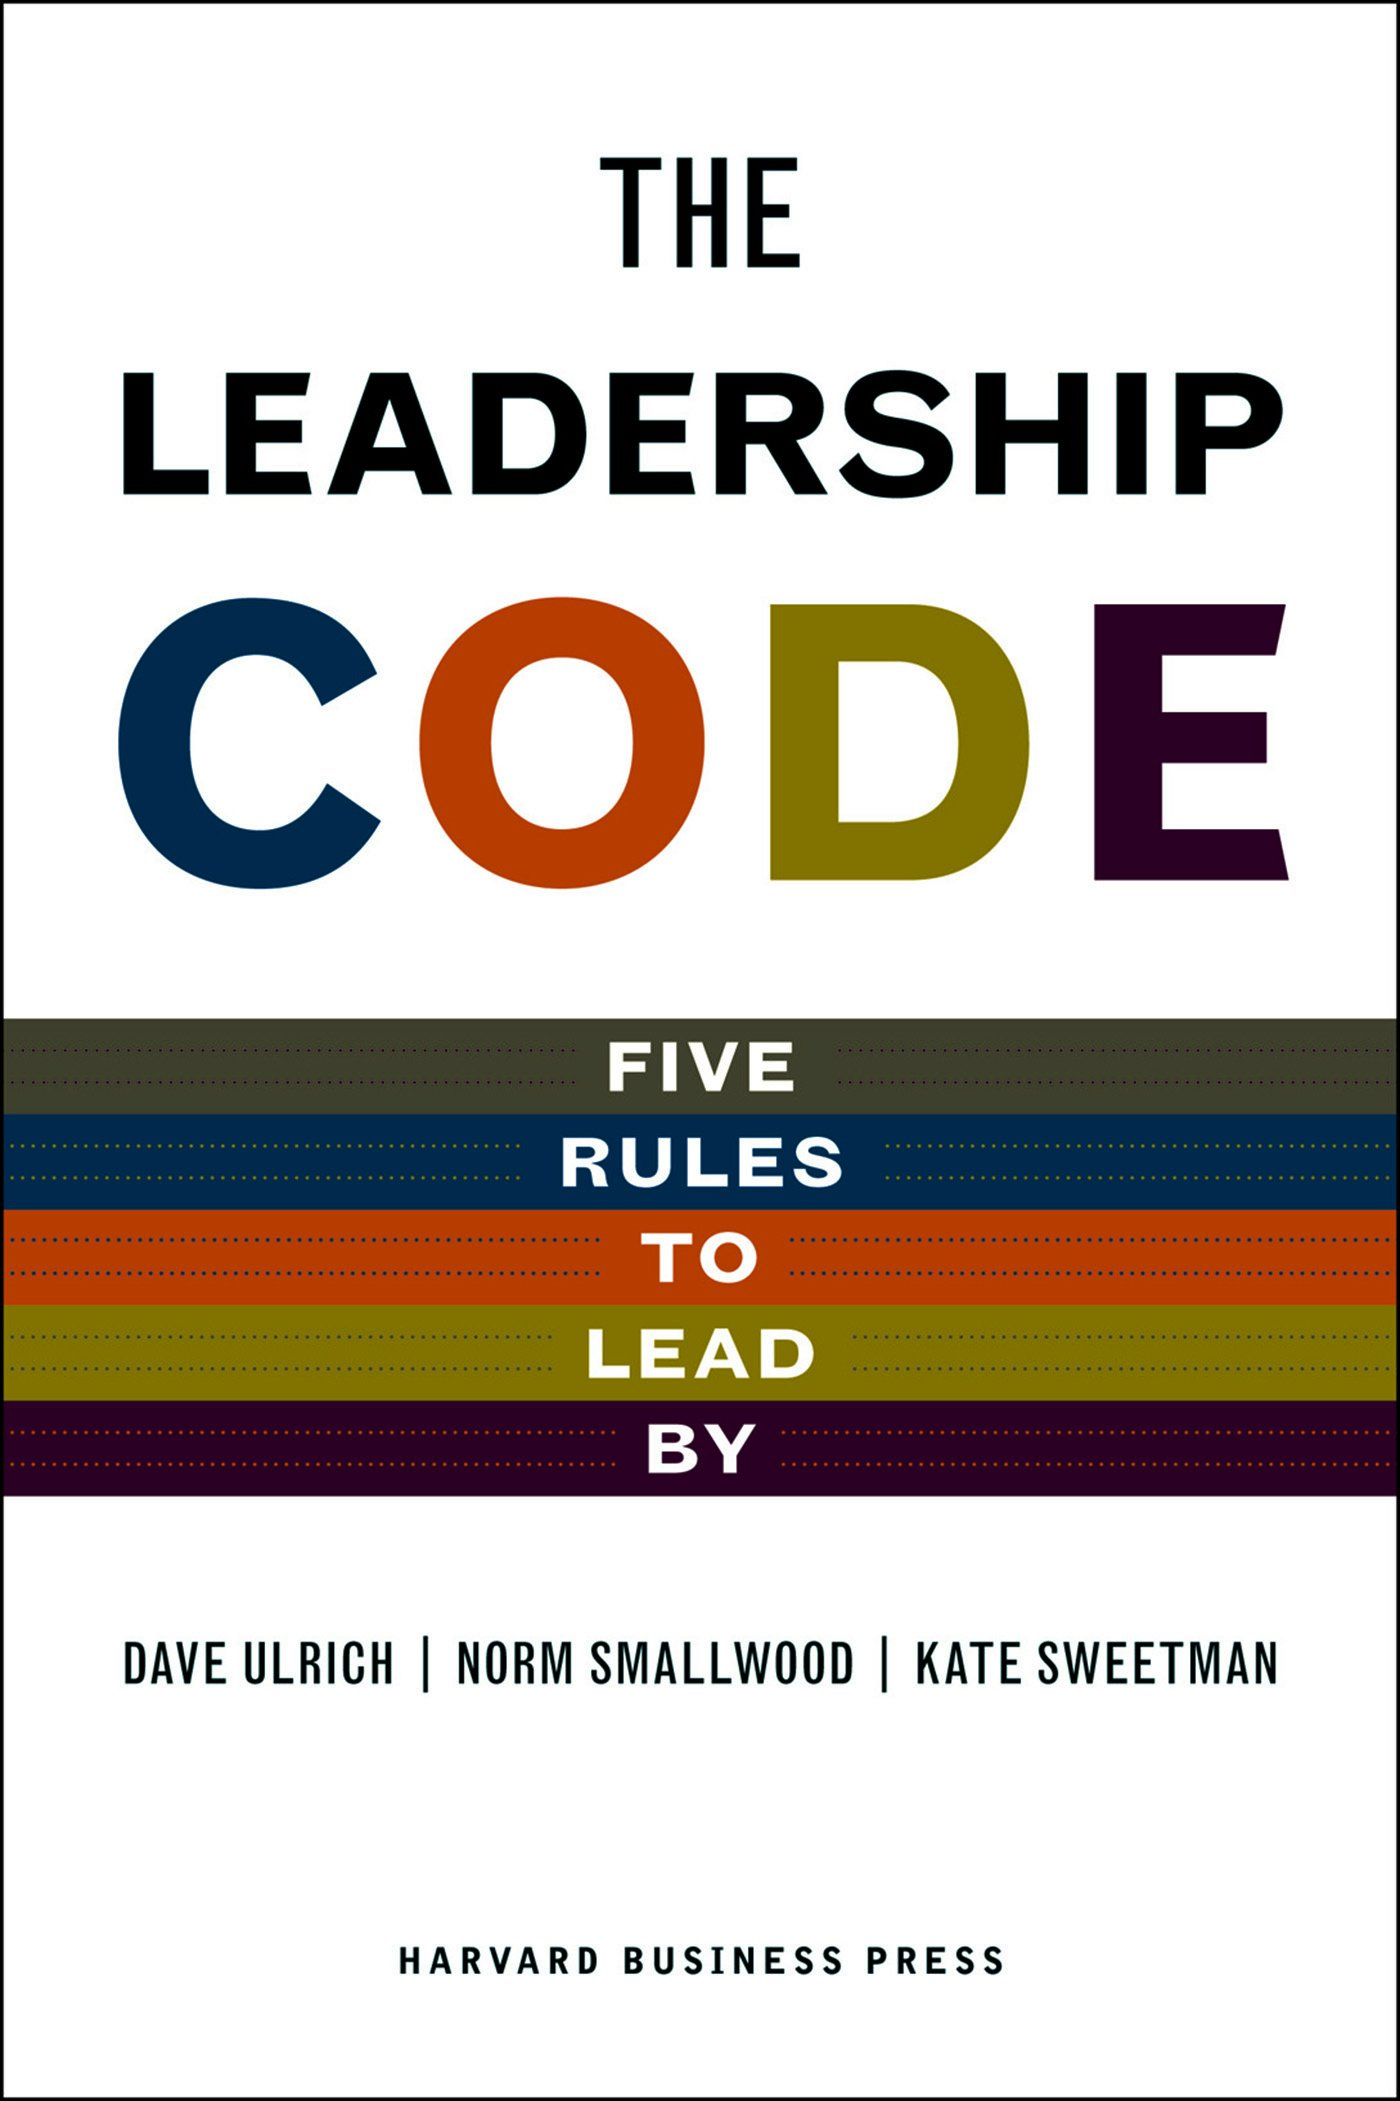 Leadership Code Index Book